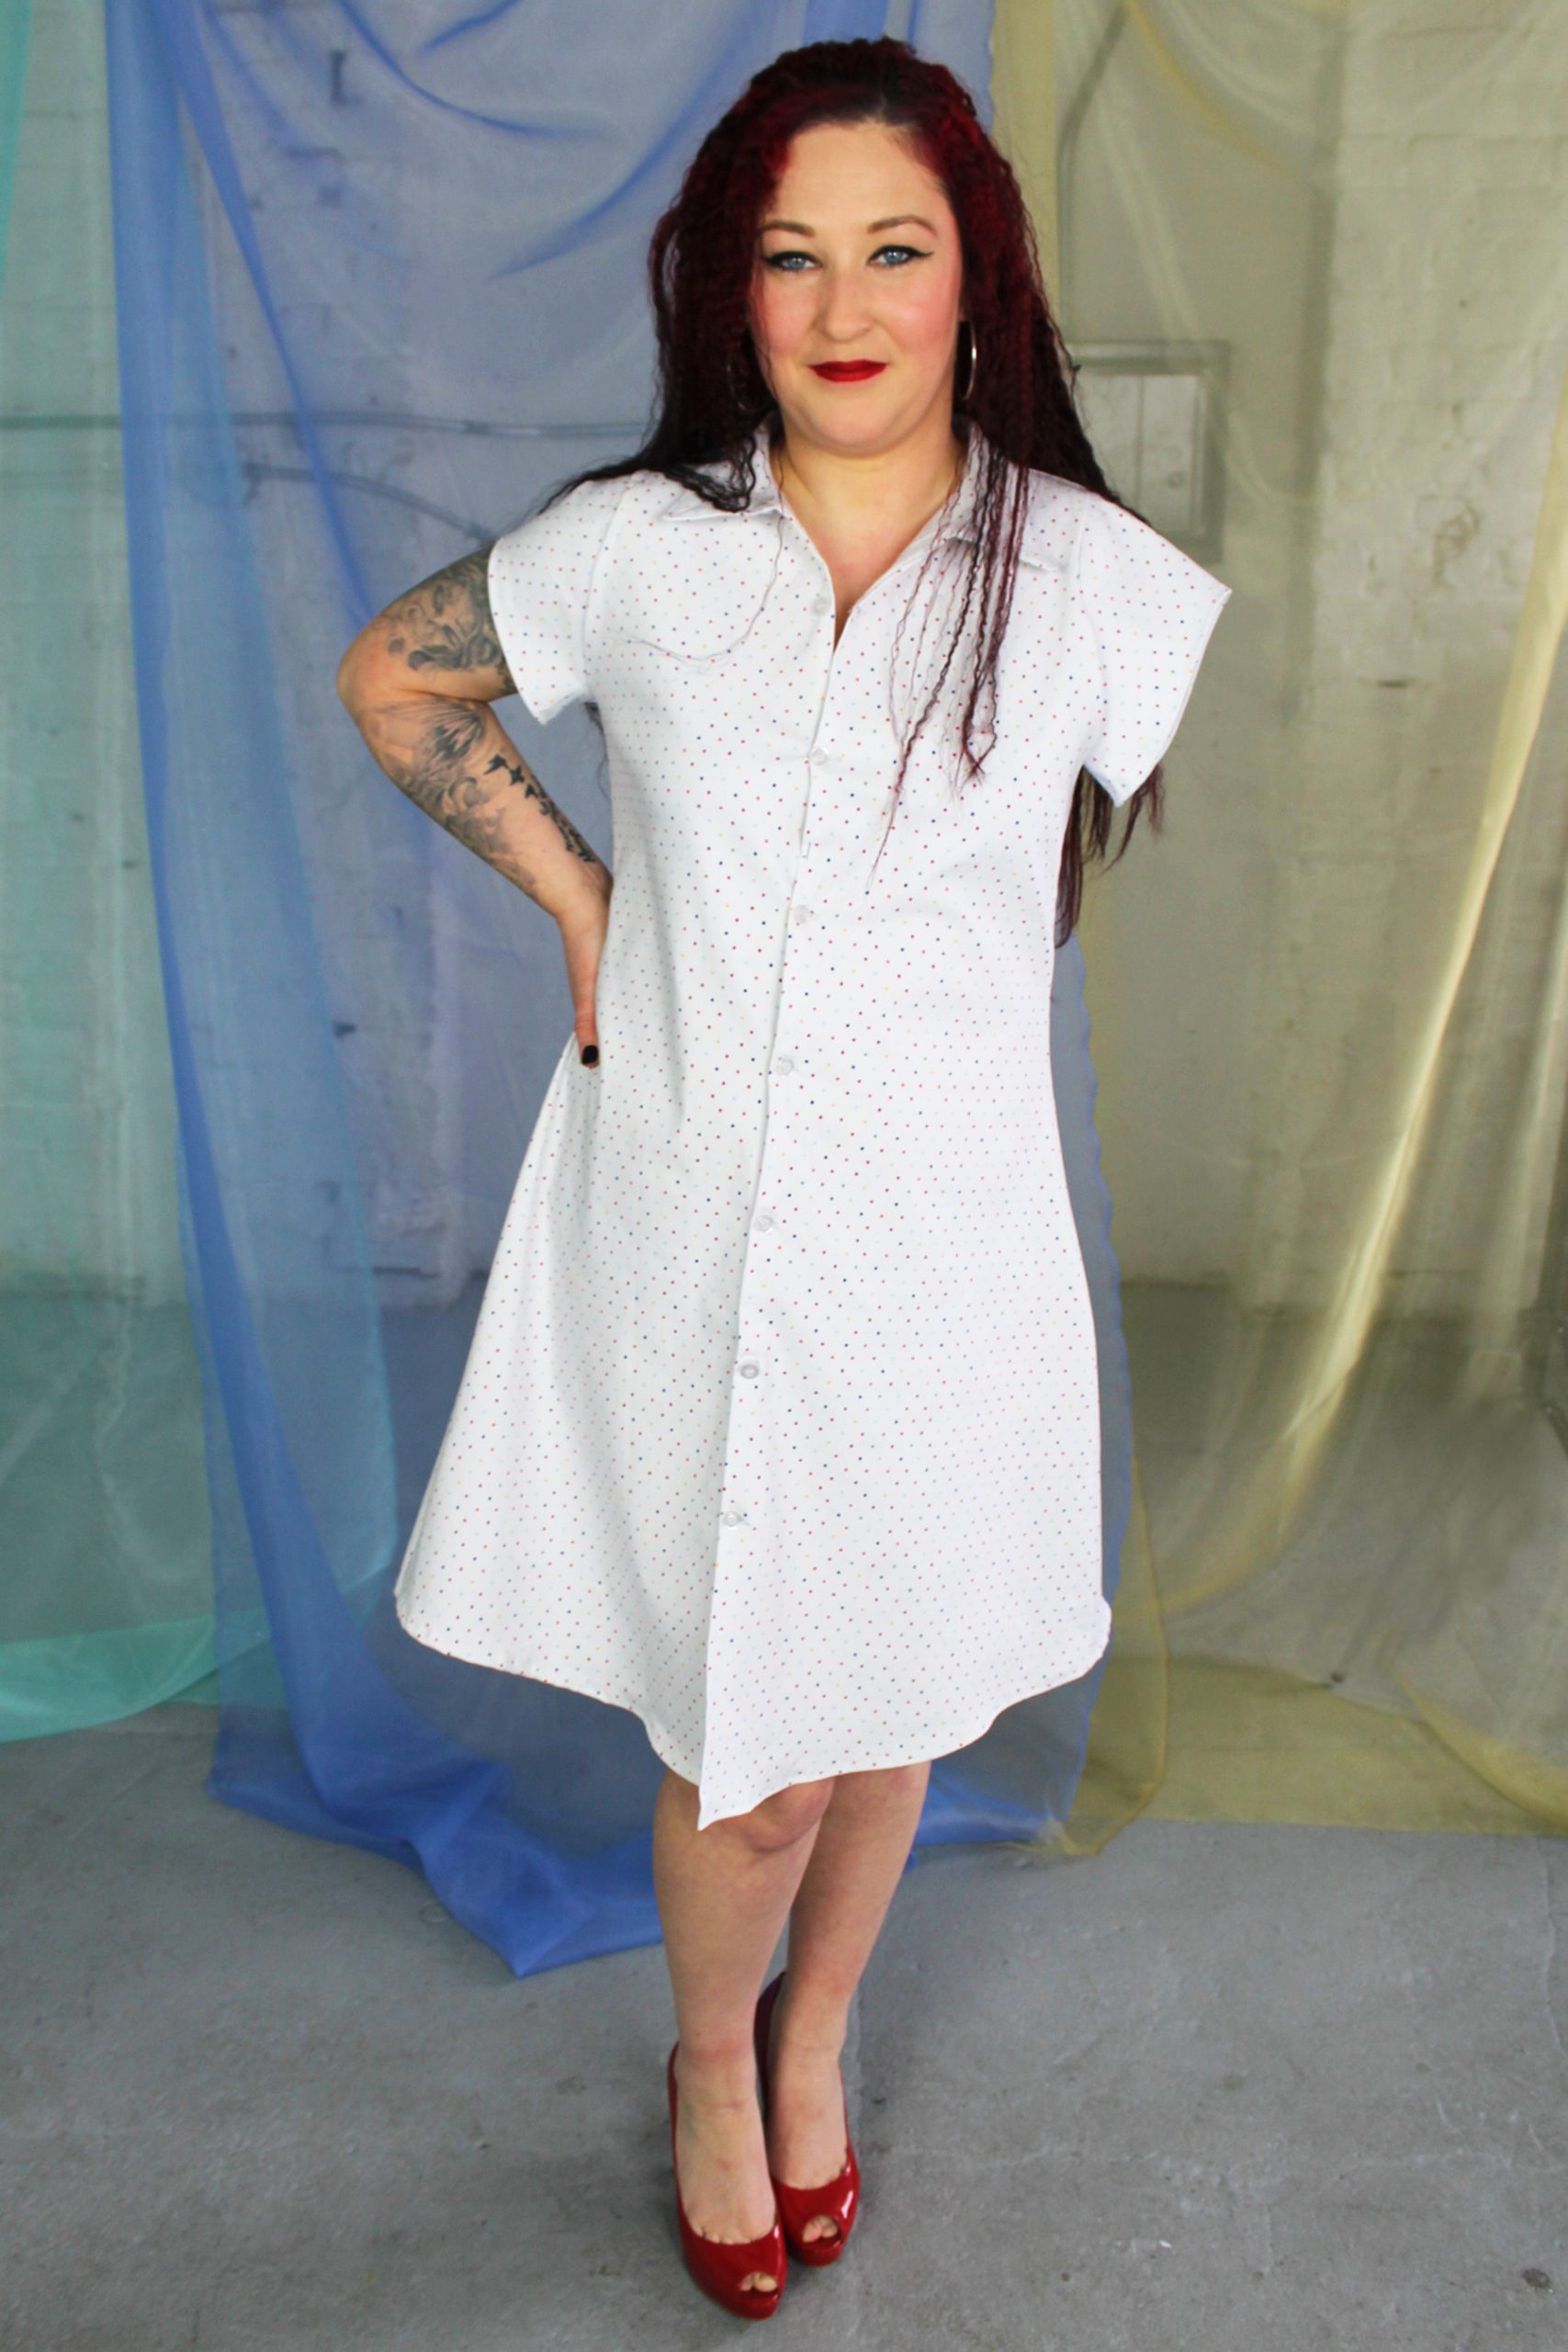 Smirking straight size white female model with one arm modeling white multi color polka dot button front collared shirt dress